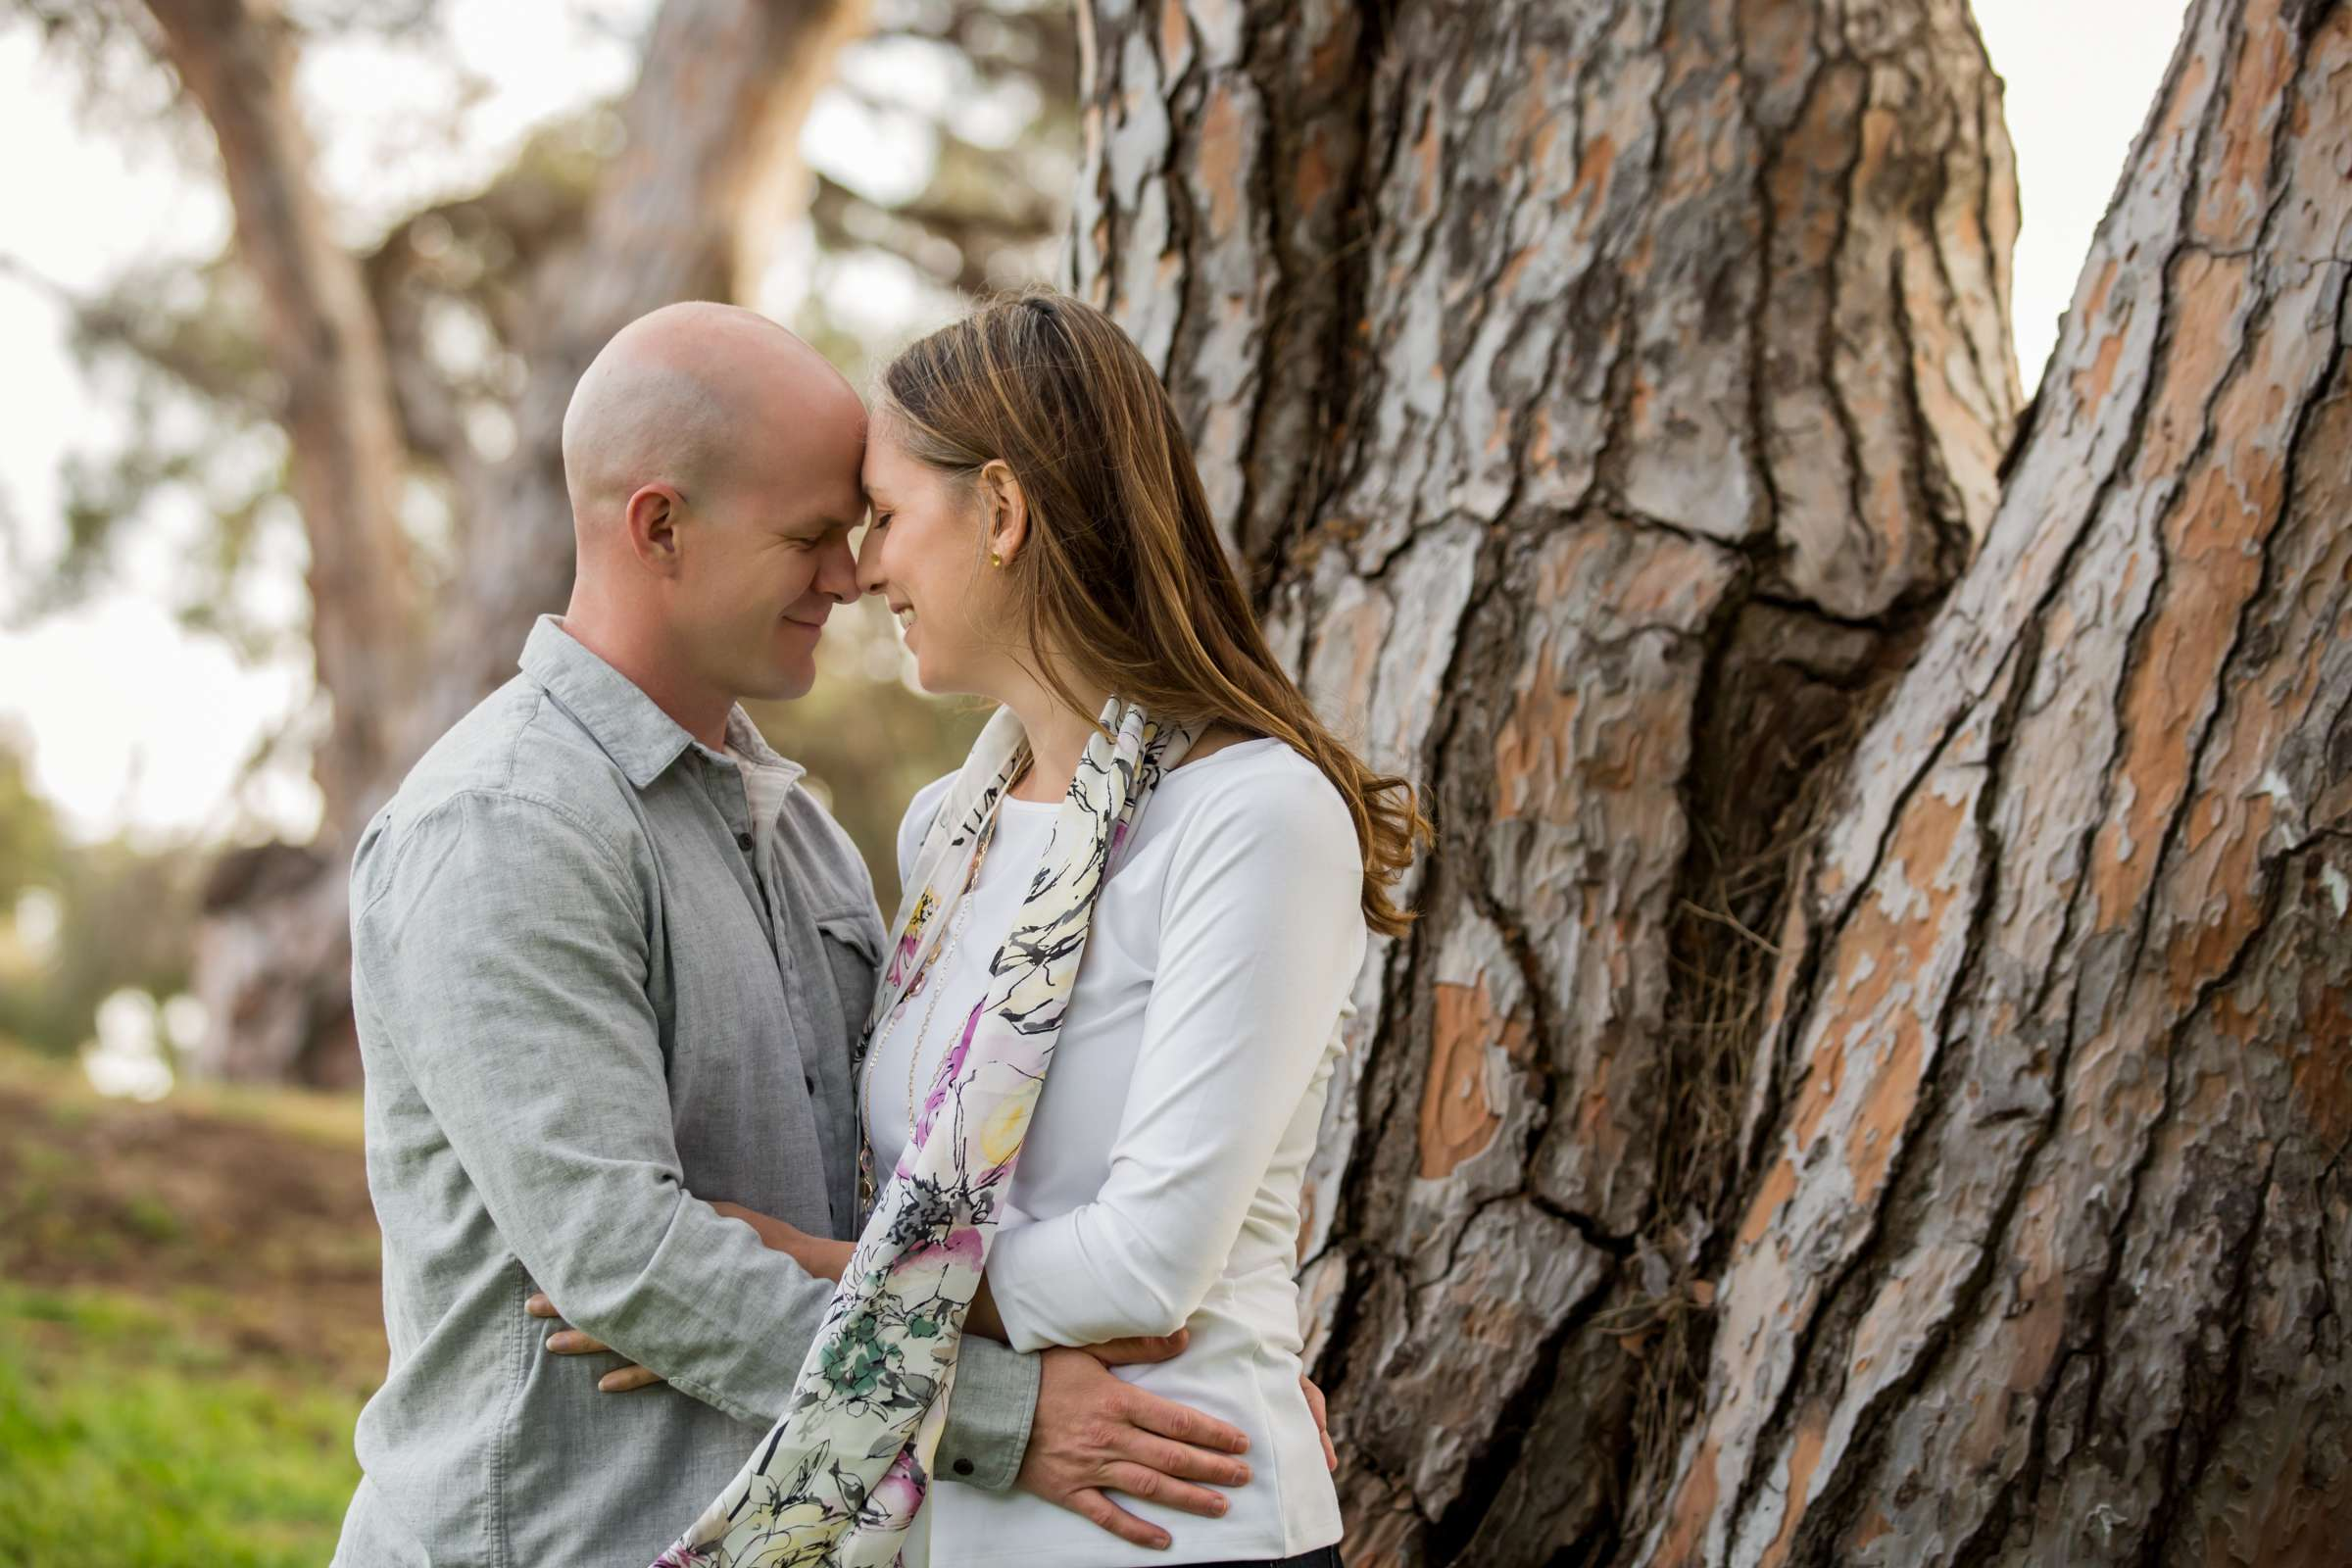 Wedding, Sarah and Skyler Wedding Photo #602352 by True Photography